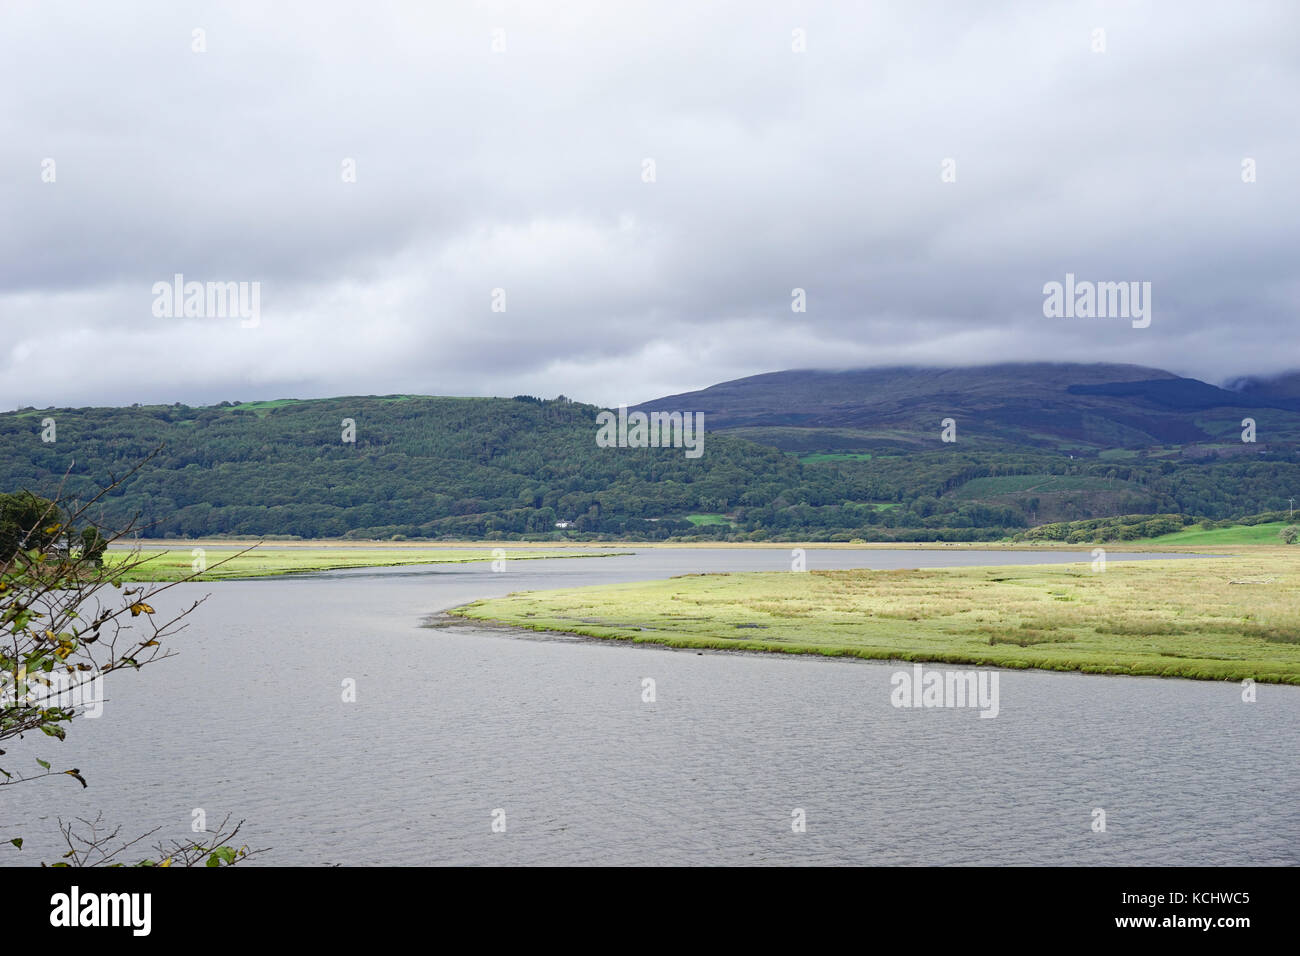 Looking over the Dyfi  estuary on a cloudy day, Wales, UK. Stock Photo